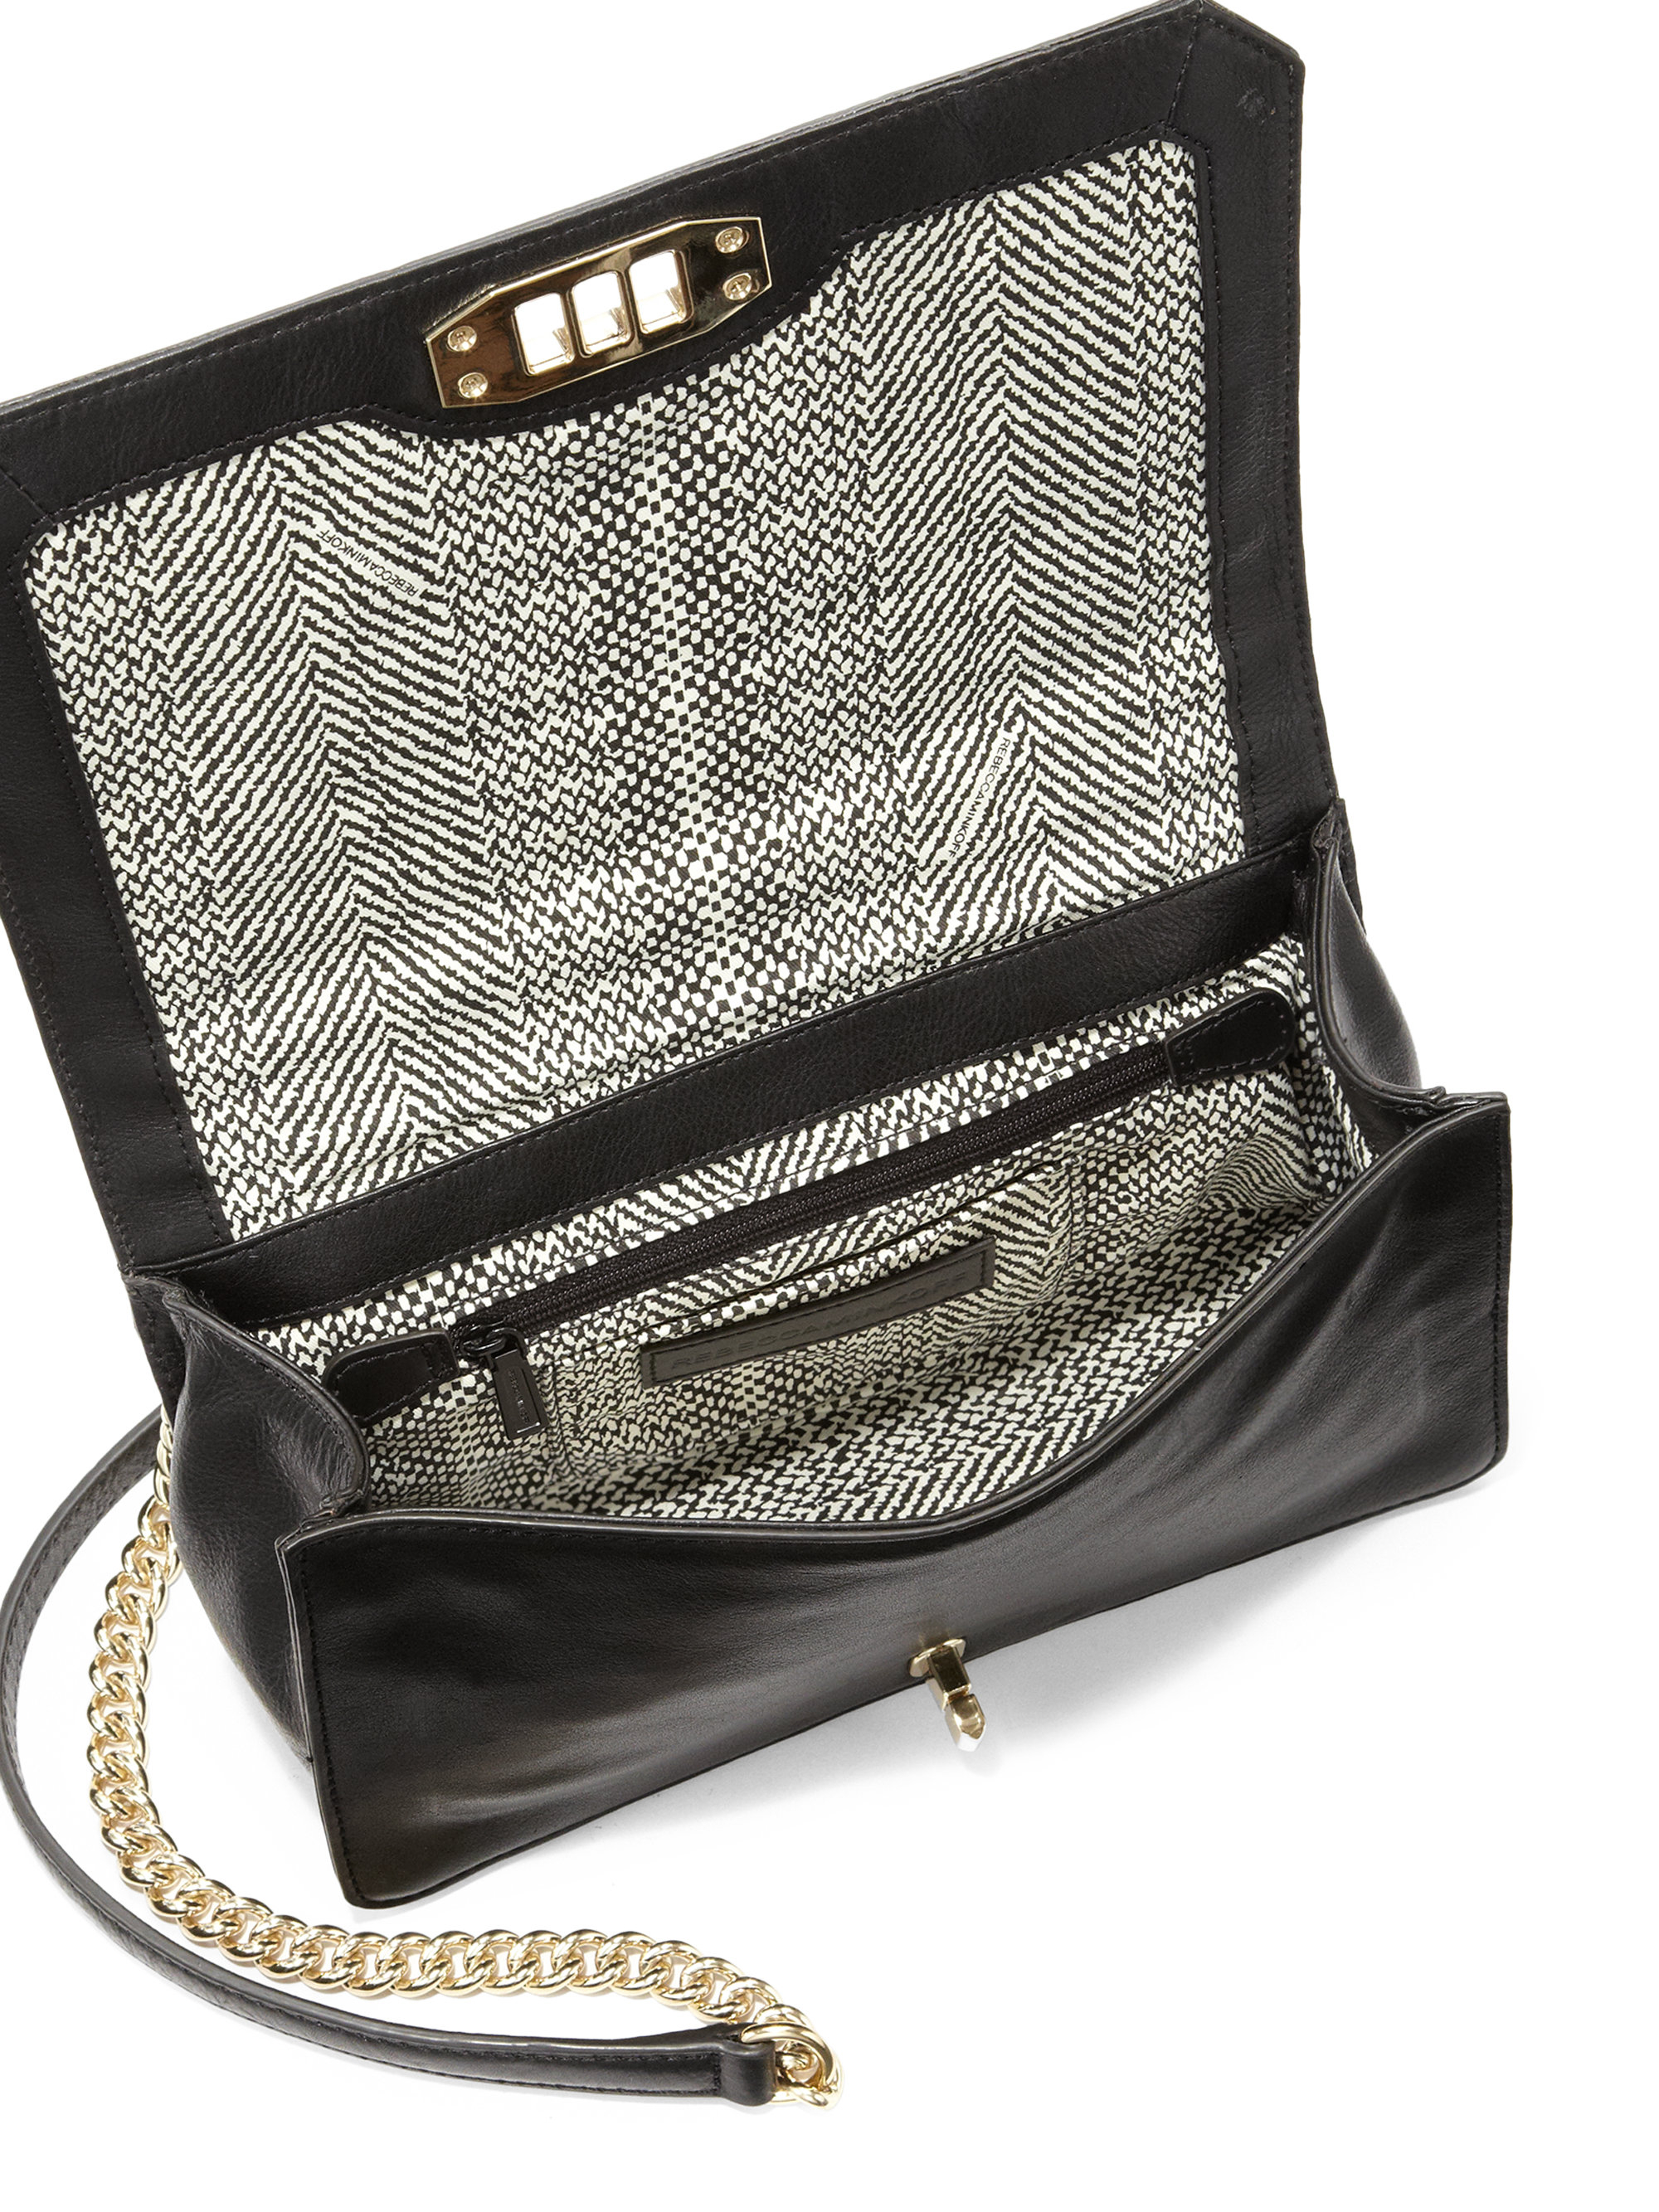 Rebecca Minkoff Love Crossbody Bag With Pearlescent Studs